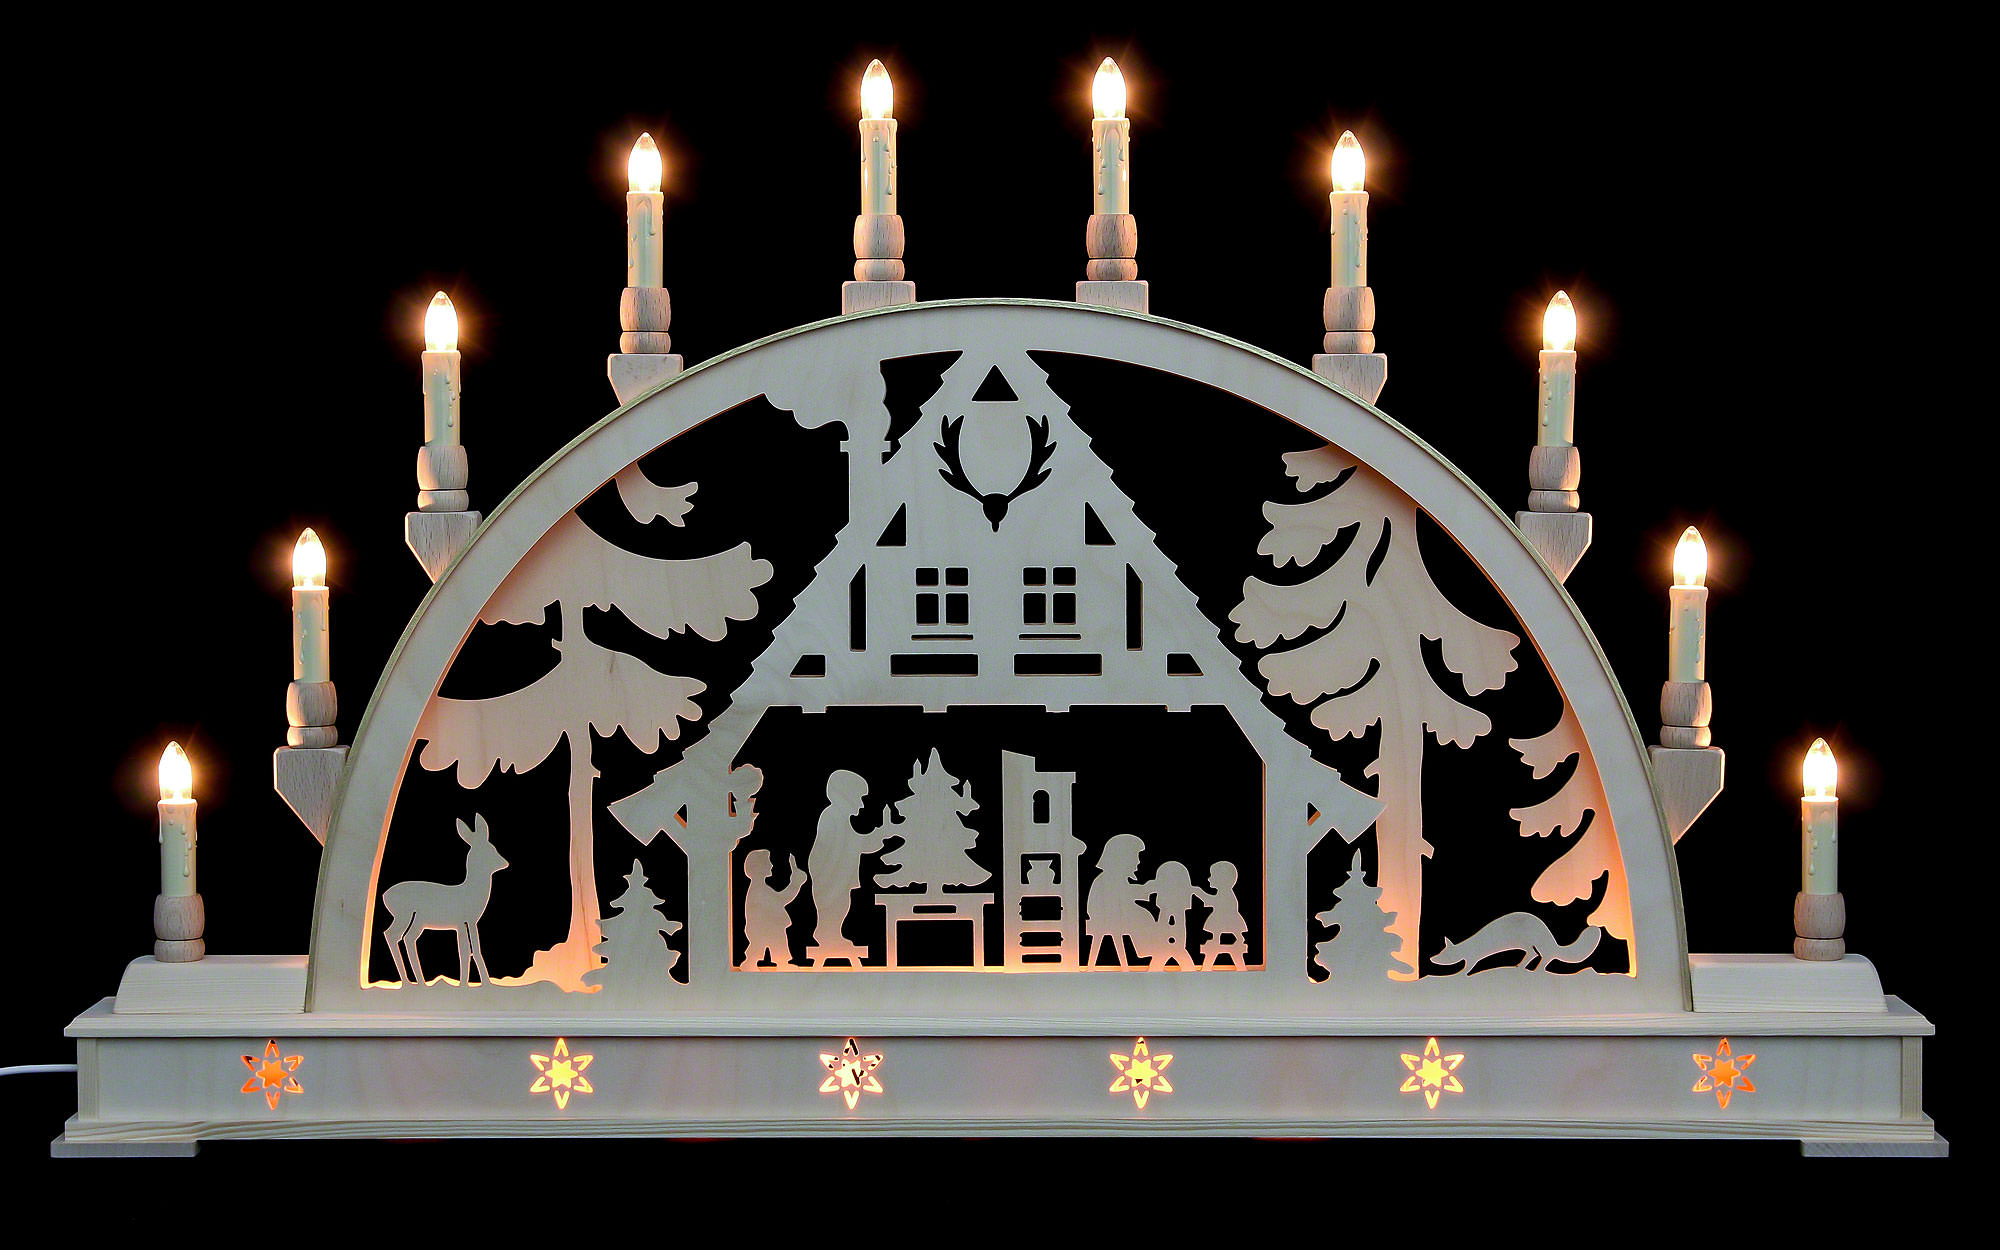 candle arch christmas house with base 78 45 cm 31 18in. Black Bedroom Furniture Sets. Home Design Ideas